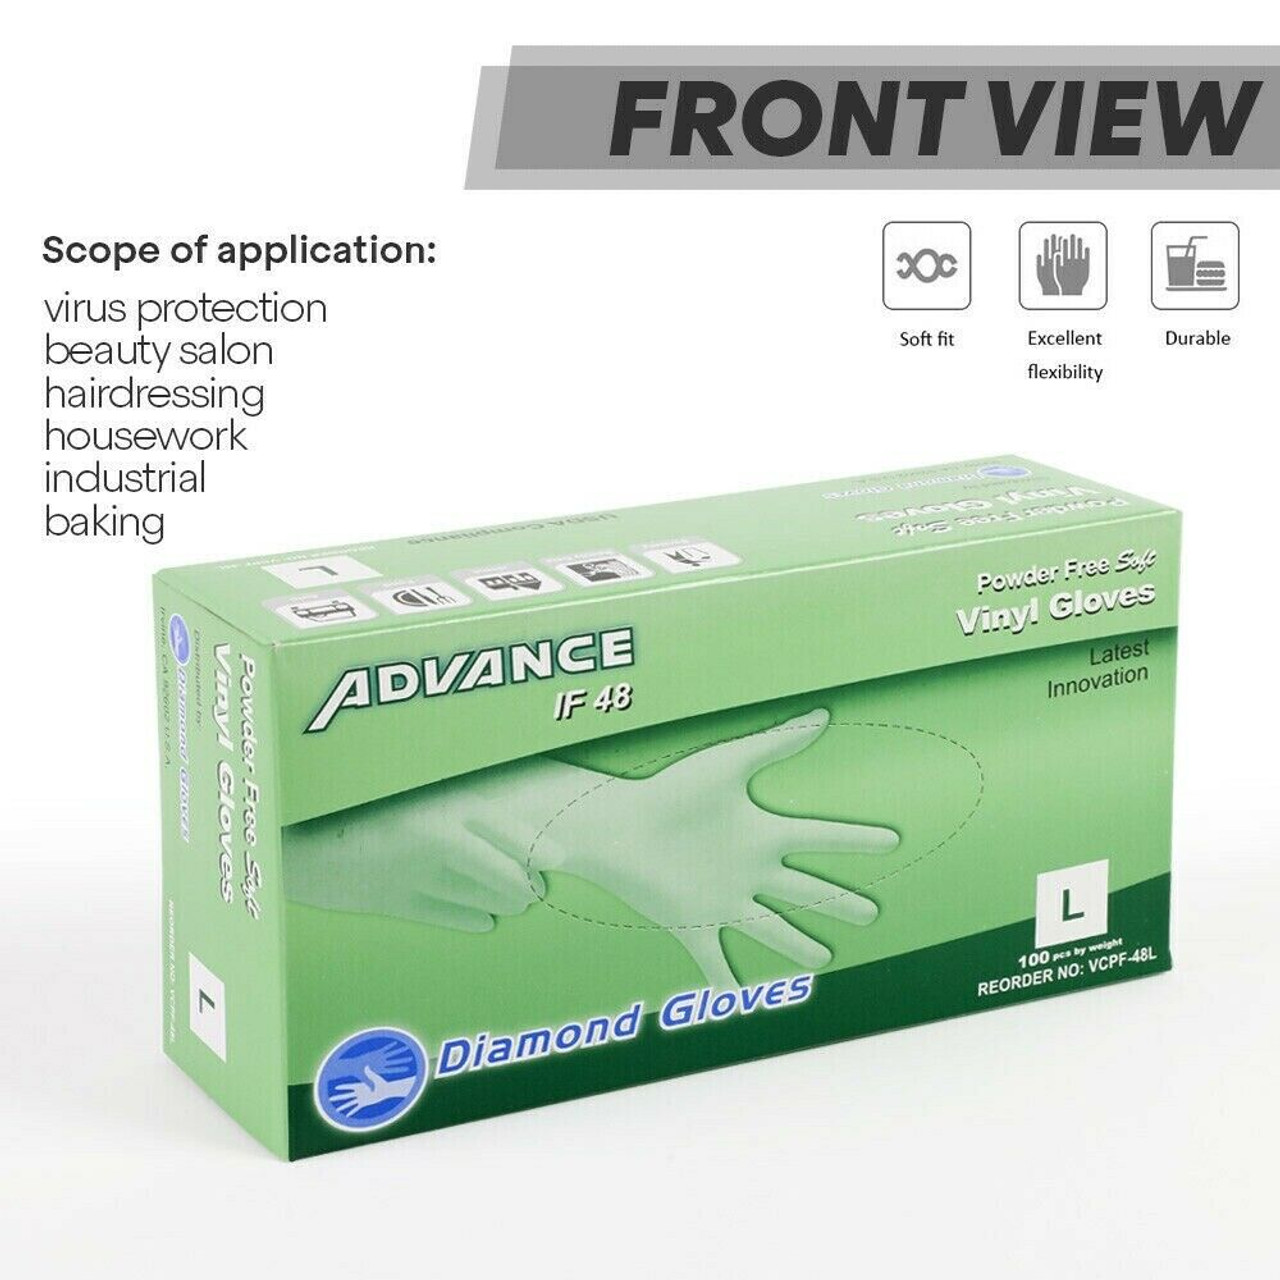 Synthetic Vinyl Powder Free Gloves, Clear, Box of 100 - Multi Purpose and General